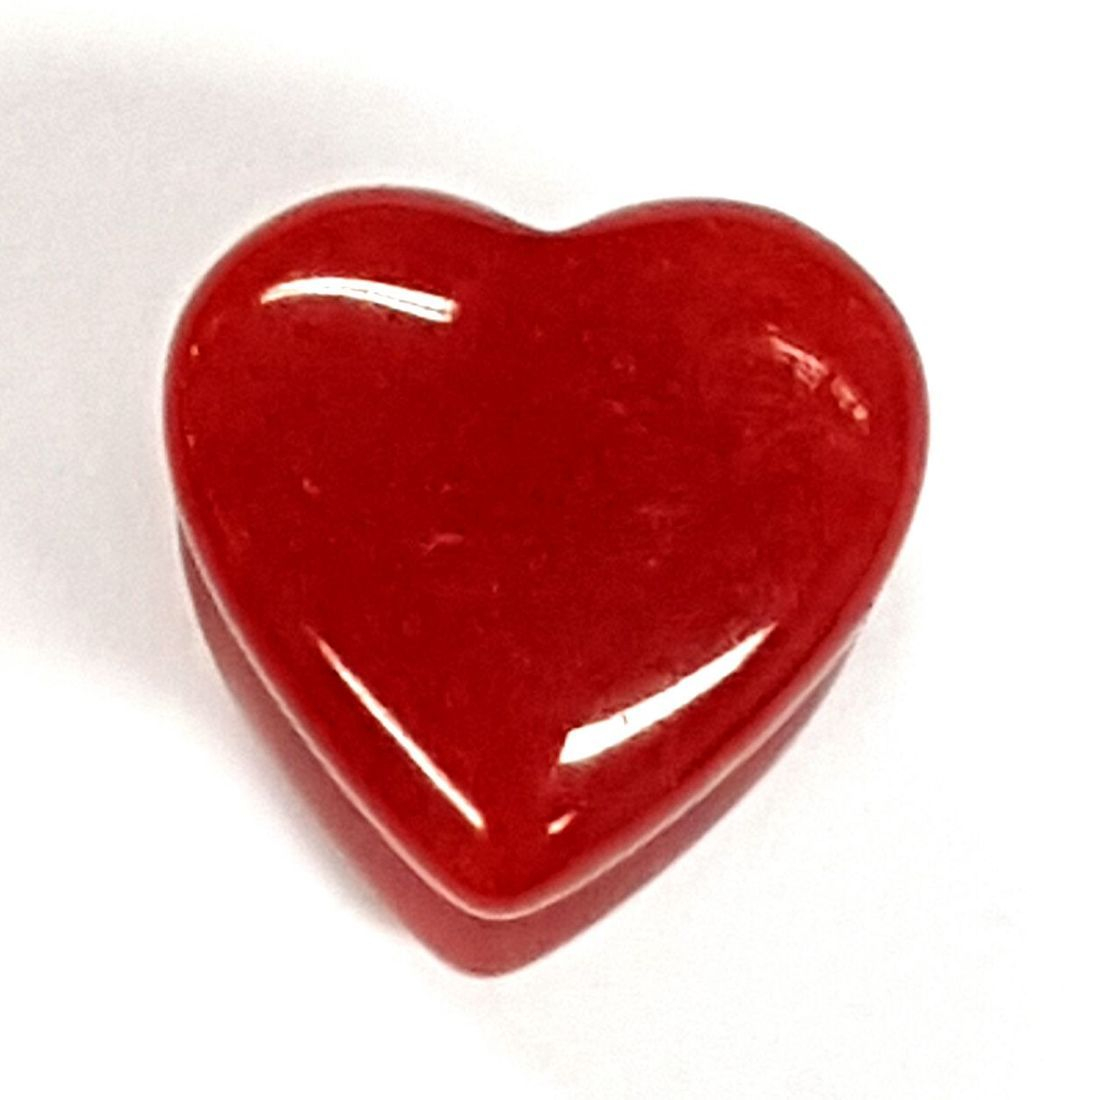 12mm heart stone plug  available at Kazbah online or our Leicester City Centre store